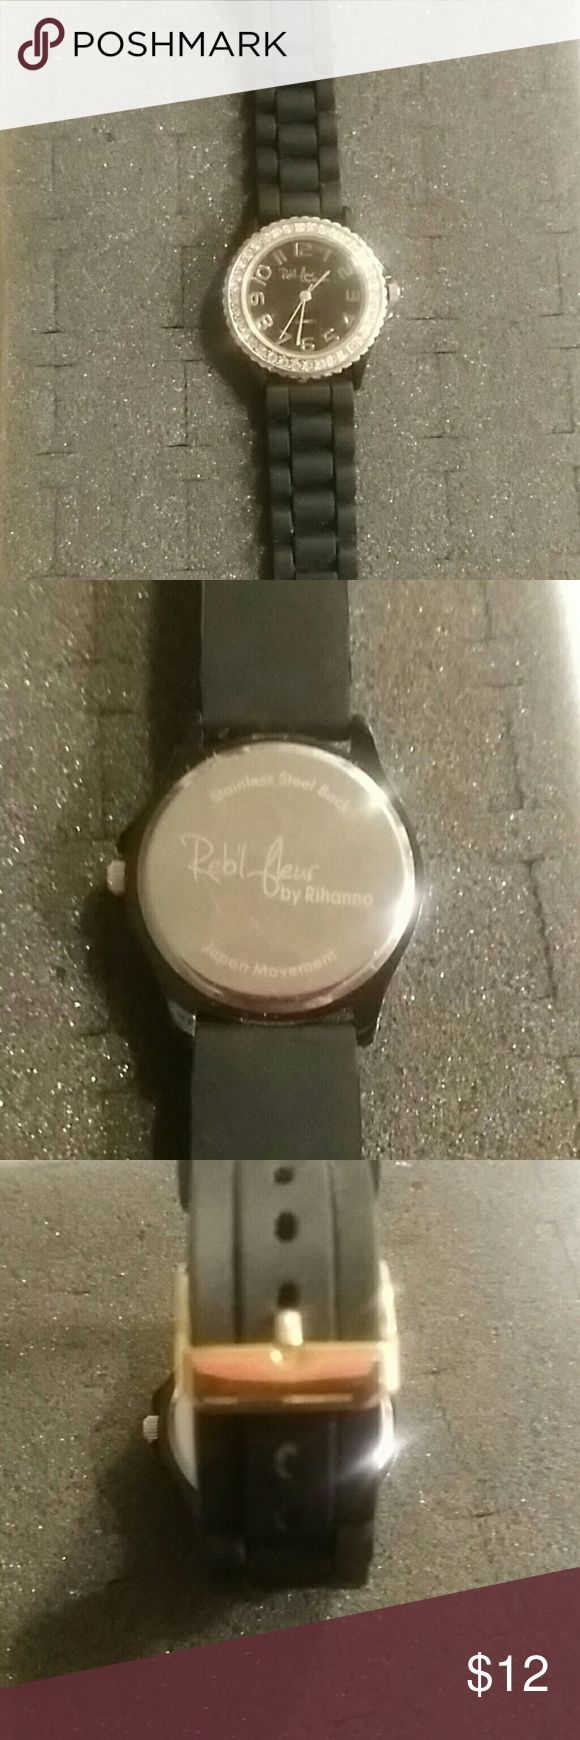 Rihanna watch Reb'l fleur watch by Rihanna. Like new Accessories Watches